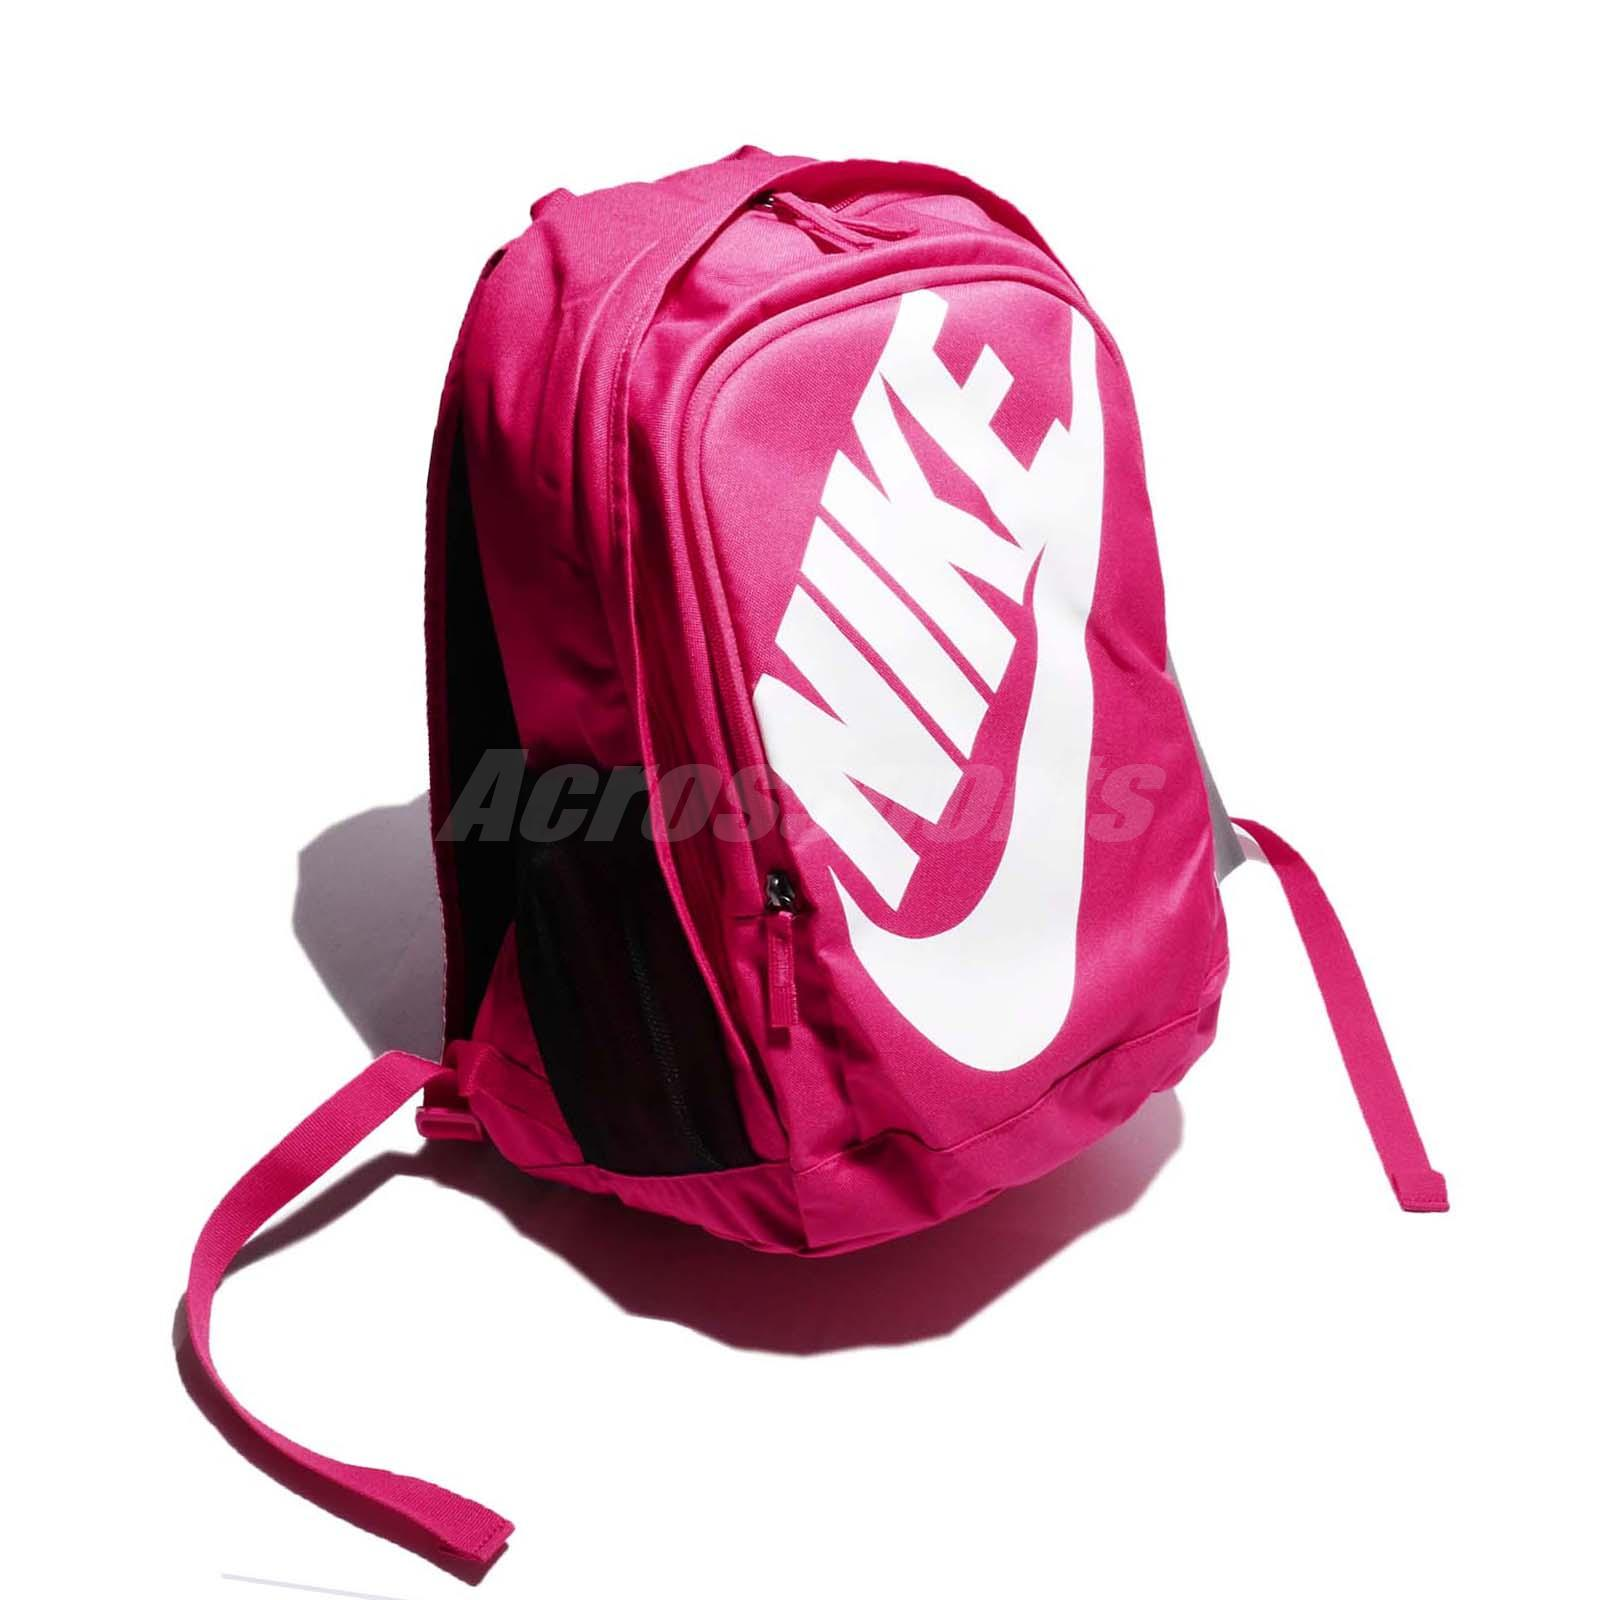 Nike Hayward Futura M 2.0 Pink White Swoosh Women Backpack Bag BA5217-694 5b4d46e35da15